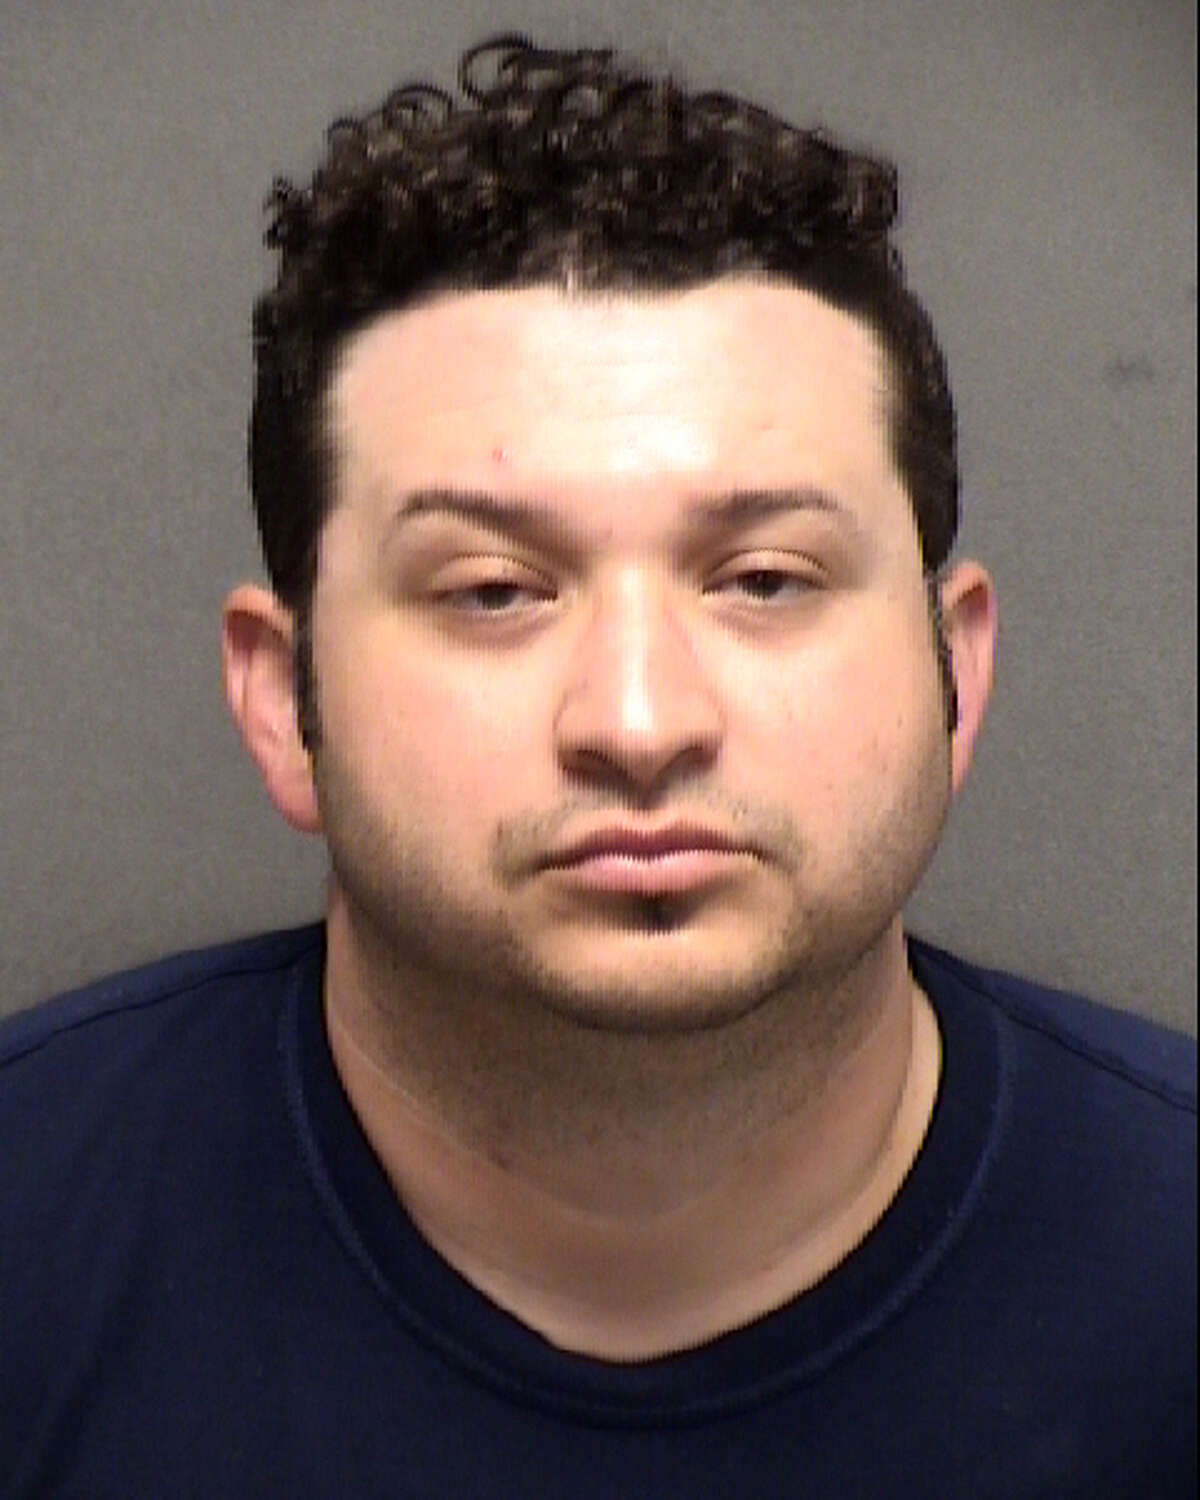 Michael Salinas, a 34-year-old captain for Bexar County ESD 5 Fire and Rescue, faces charges of arson and retaliation.